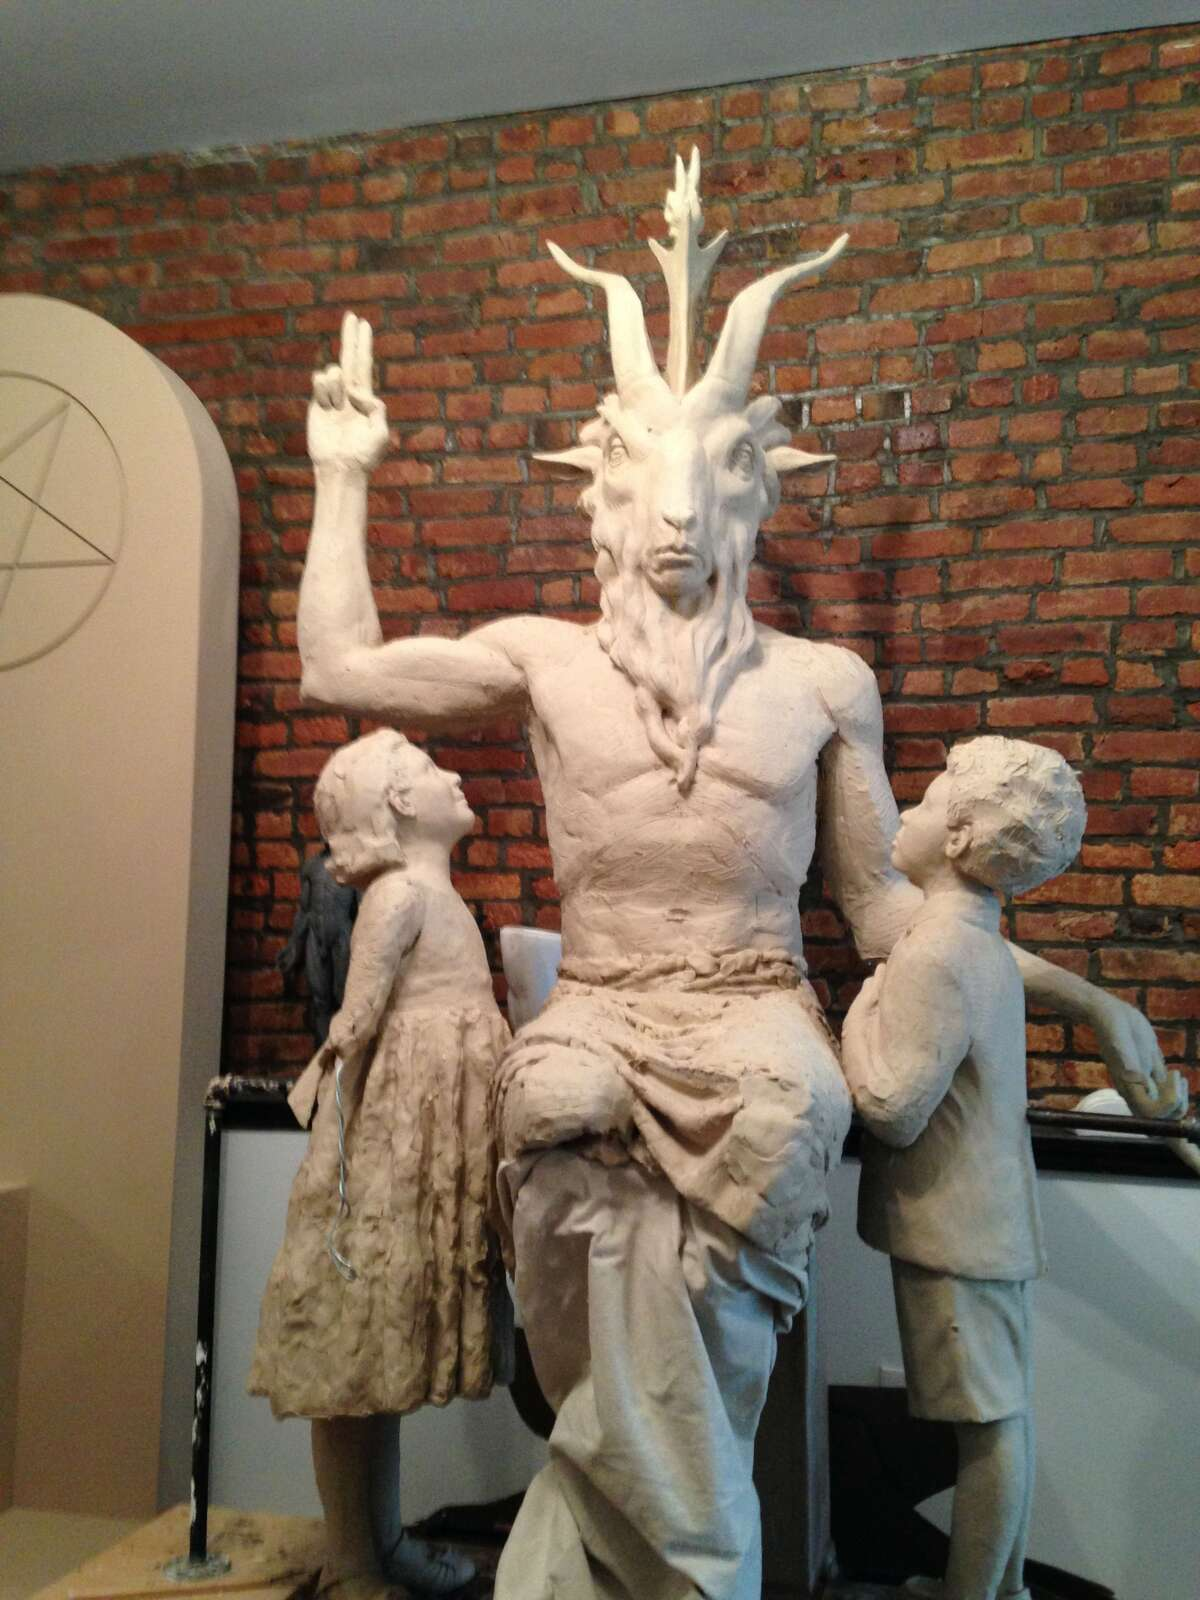 Ground zero for Satan vs. Moses New York-based Satanic Temple wants to put a 7-foot-tall statue at the Oklahoma state Capitol, where a Ten Commandments monument was placed in 2012.In the latest update, the Capitol Preservation Commission has declared a moratorium on any more monuments, after it got requests from a Hindu group, People for the Ethical Treatment of Animals, and the Church of the Flying Spaghetti Monster.The commission has said it's waiting for the ACLU suit over the Ten Commandments monument to be resolved.